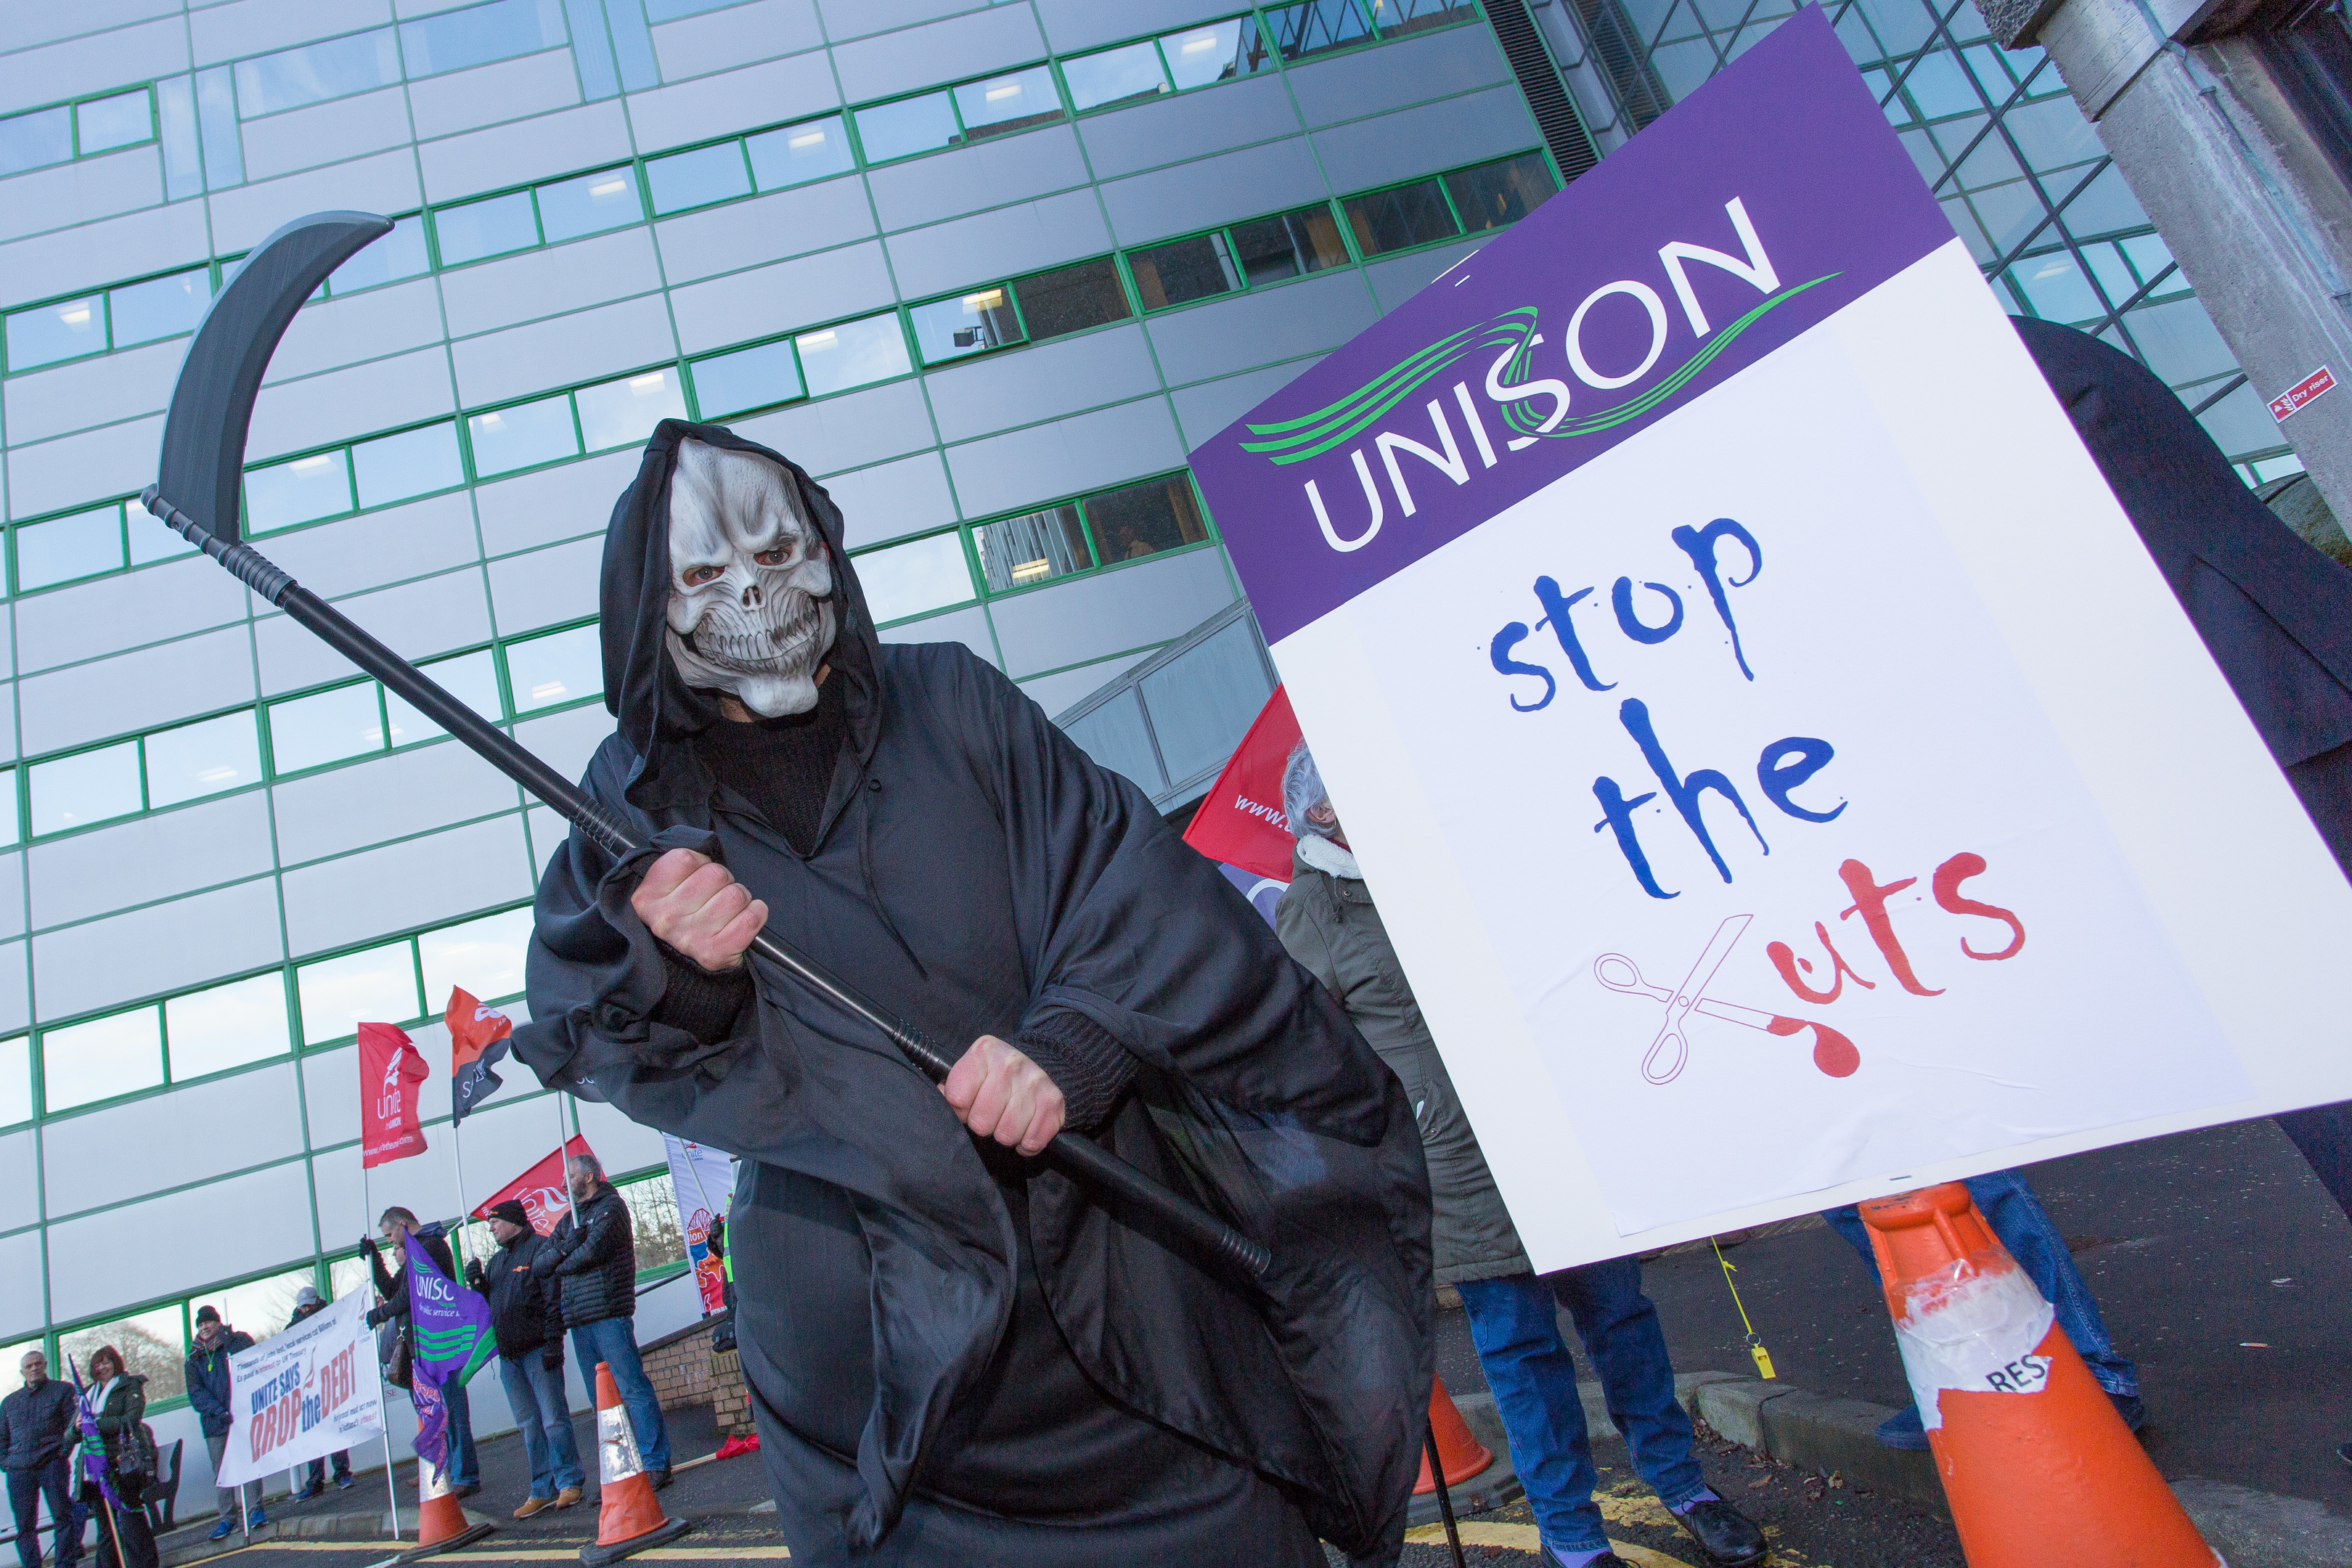 Protesters demanded investment not cuts as Fife Council gathered to set its budget